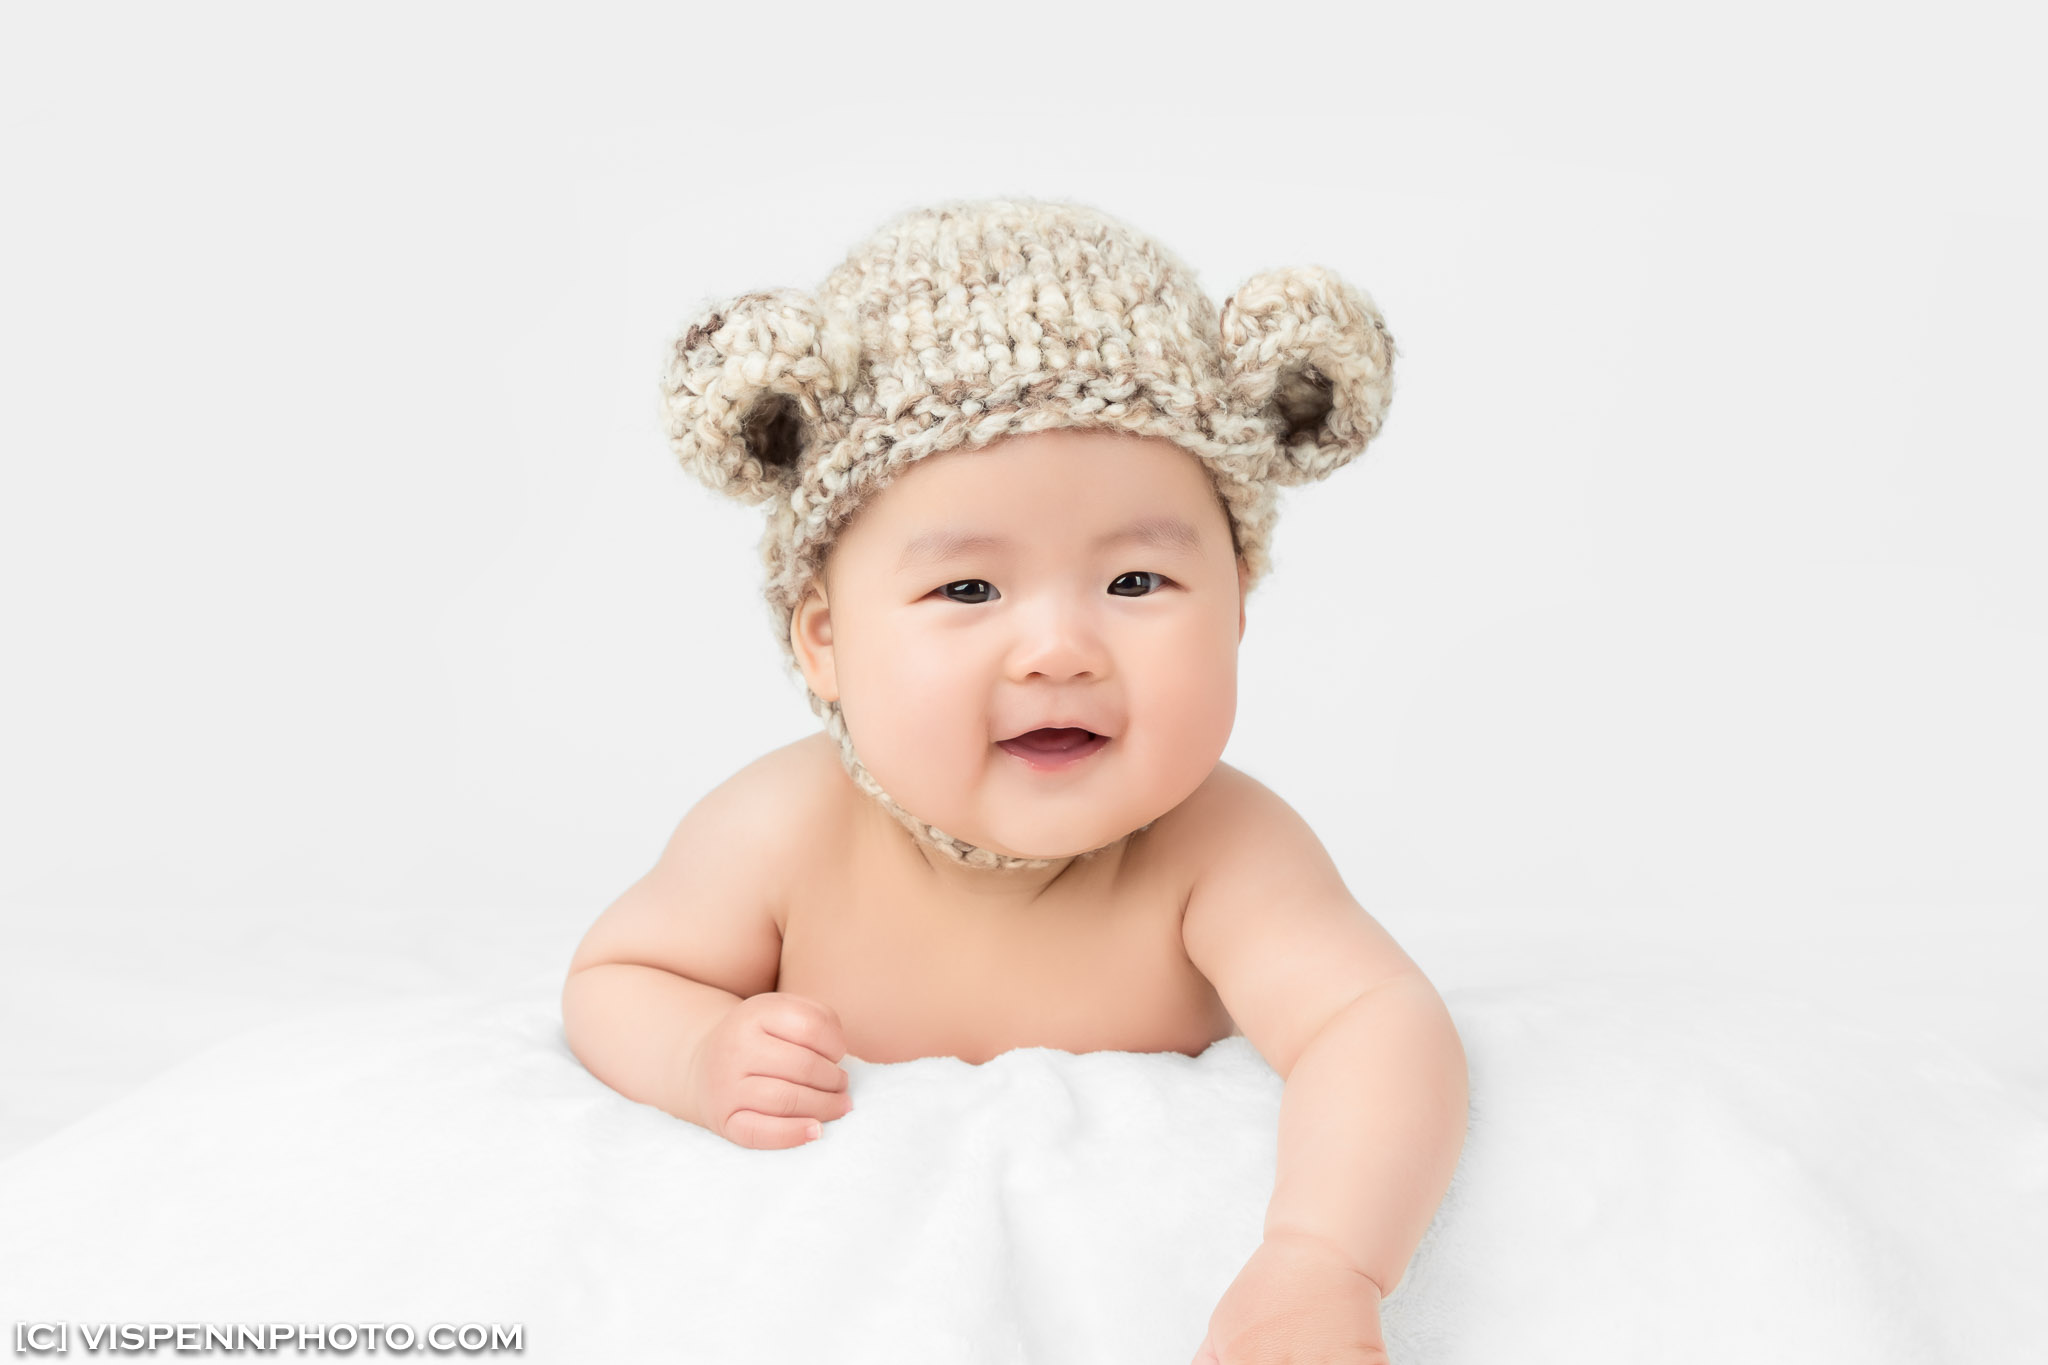 Melbourne Newborn Baby Family Photo BaoBao VISPENN 墨尔本 儿童 宝宝 百天照 满月照 孕妇照 全家福 100DAYS AnnieZHANG 1520 VISPENN